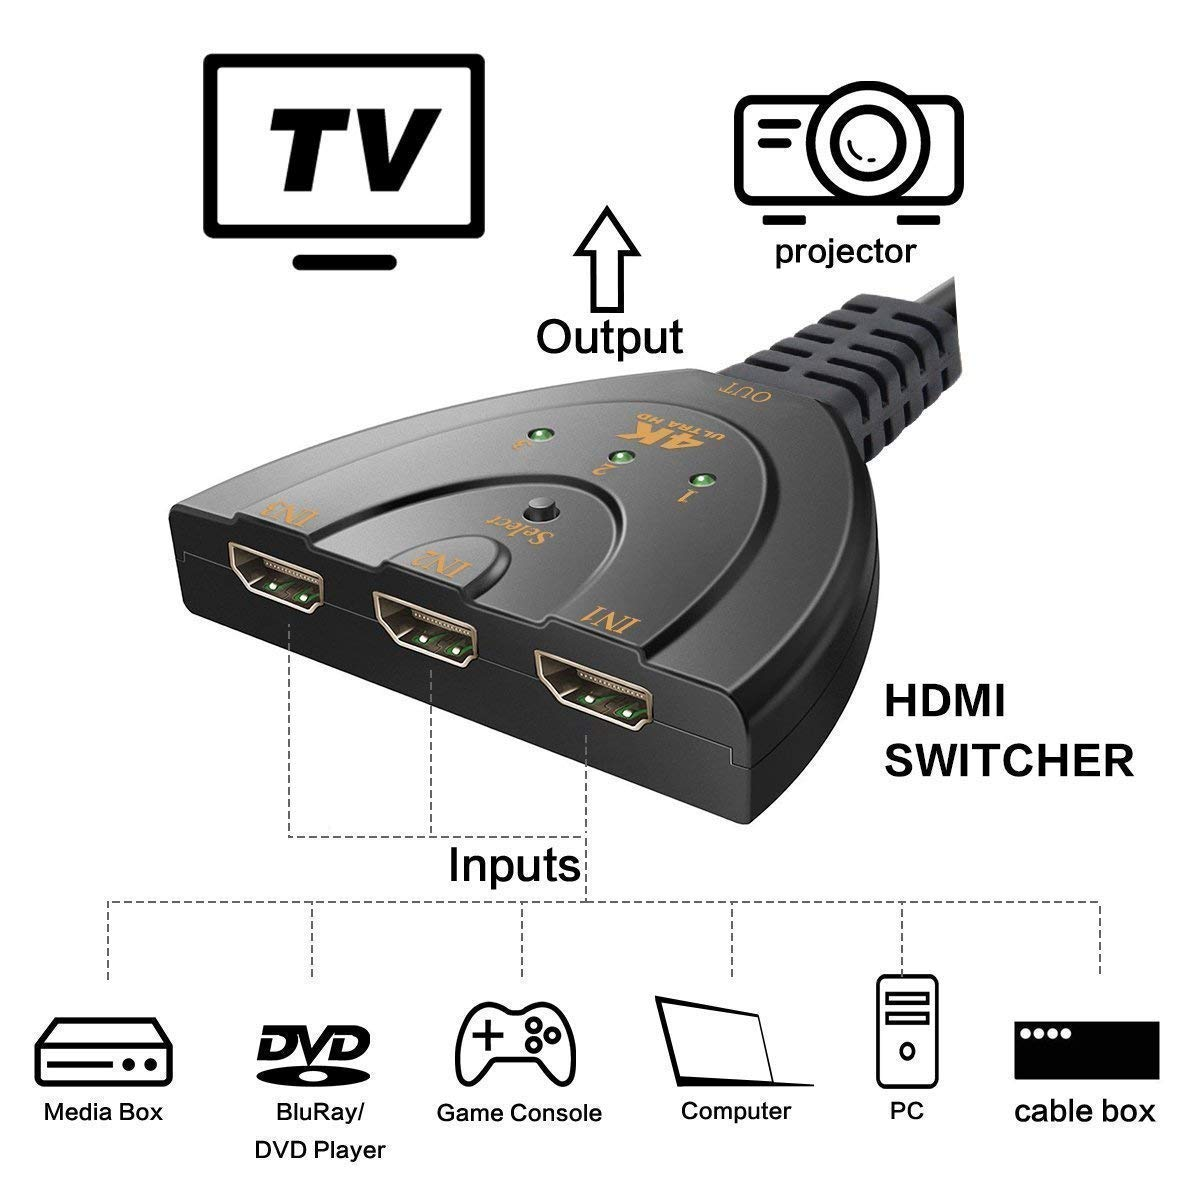 Drumstone 3 Port HDMI 4 K 1.4V Version Switch Splitter with Pigtail Cable